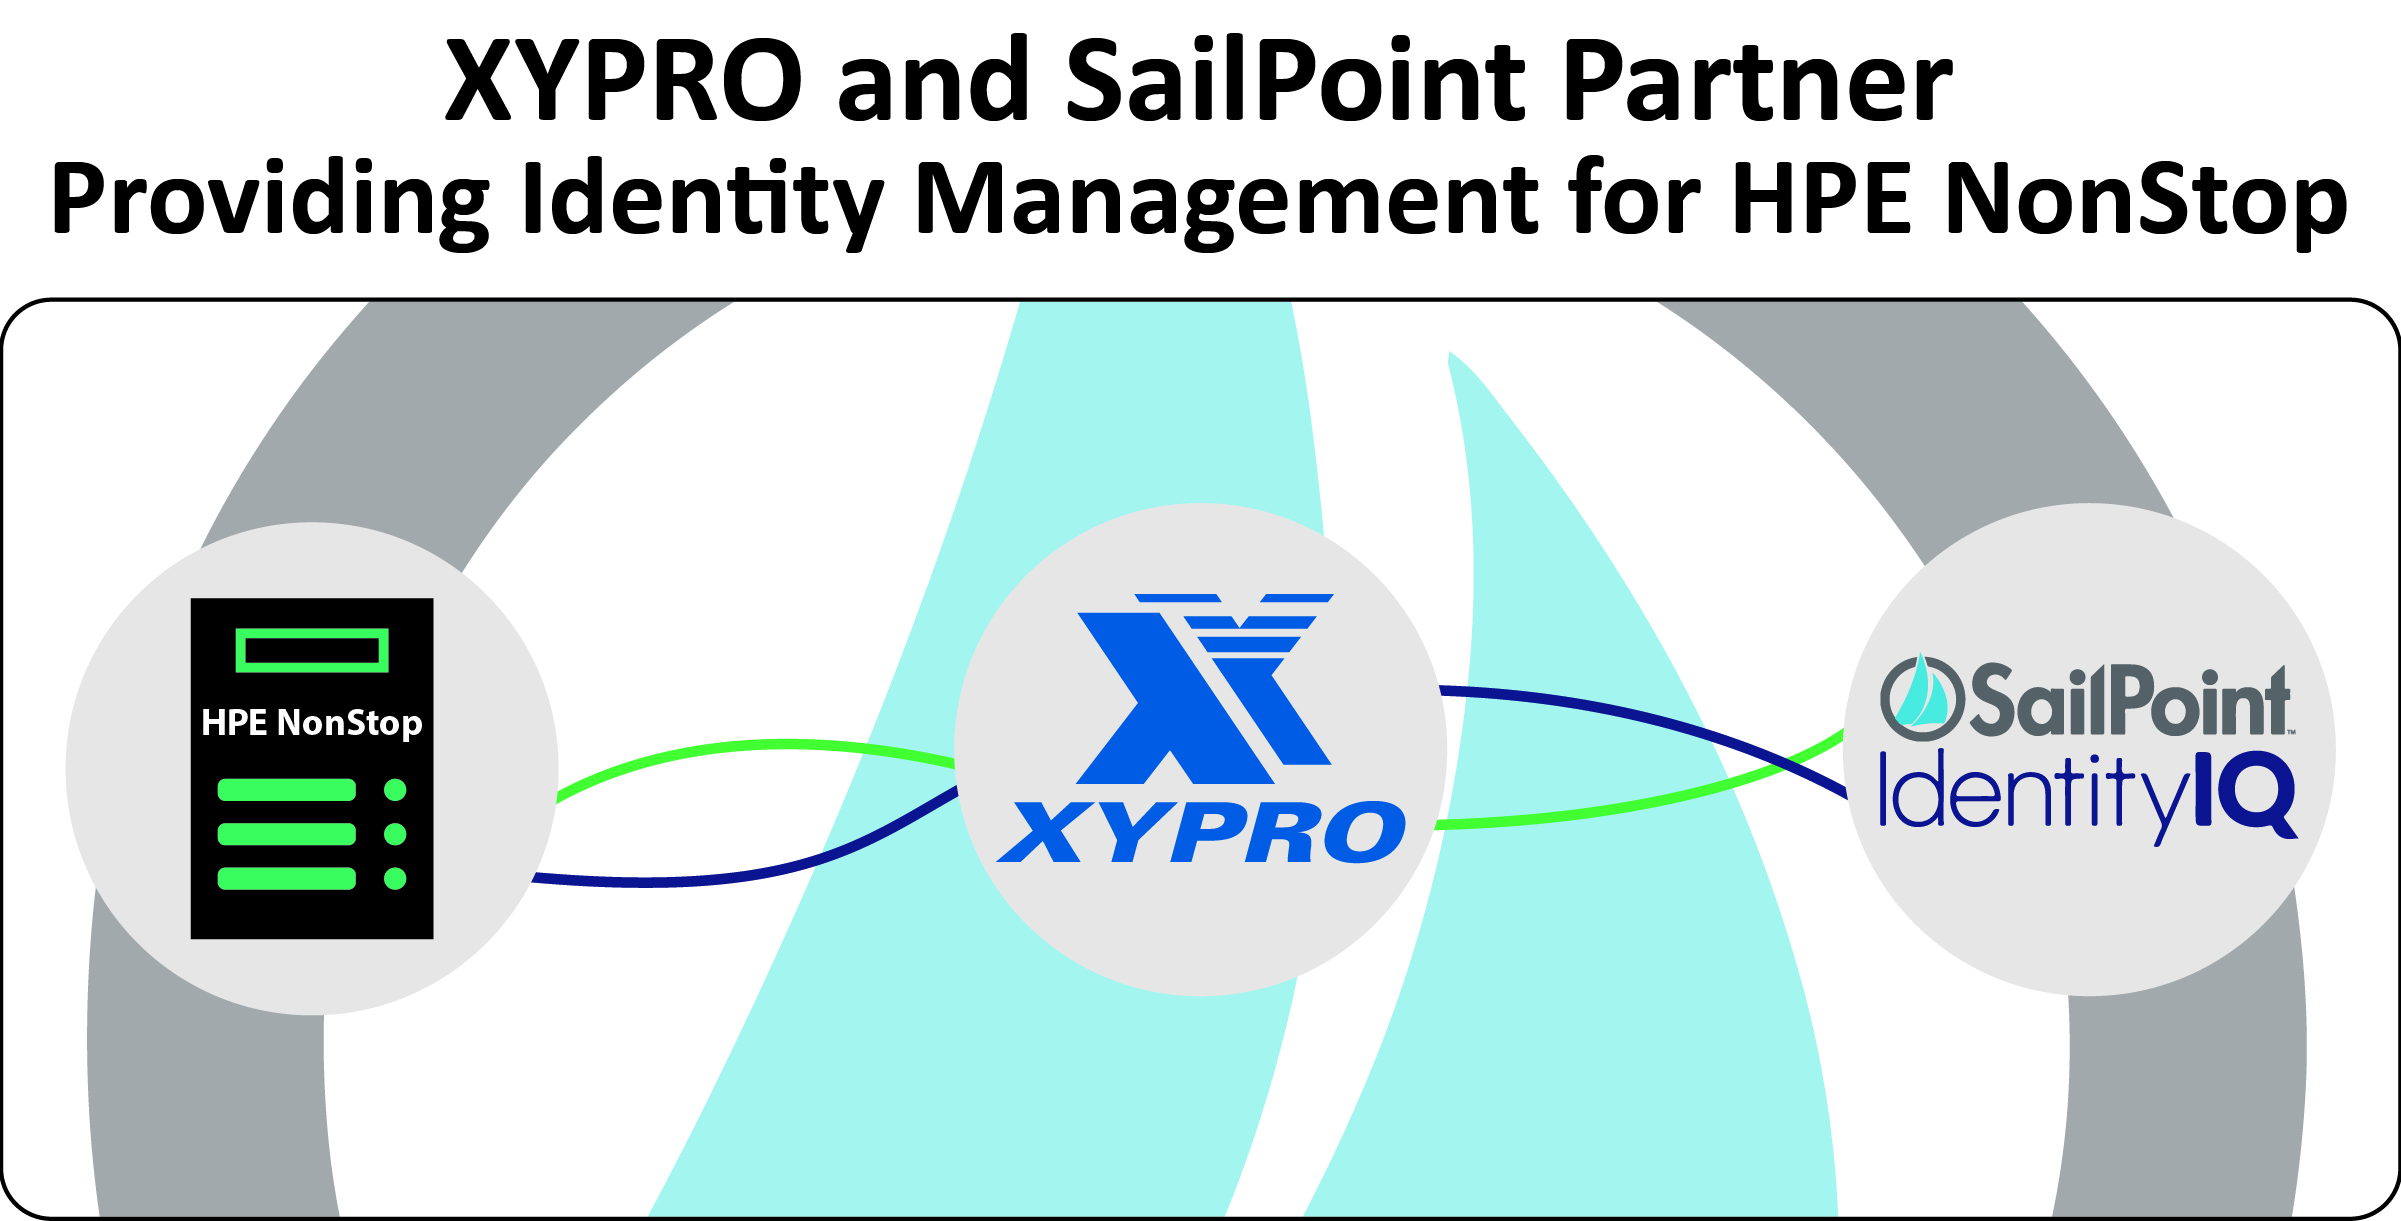 XYPRO and SailPoint Partner to Provide Identity Management